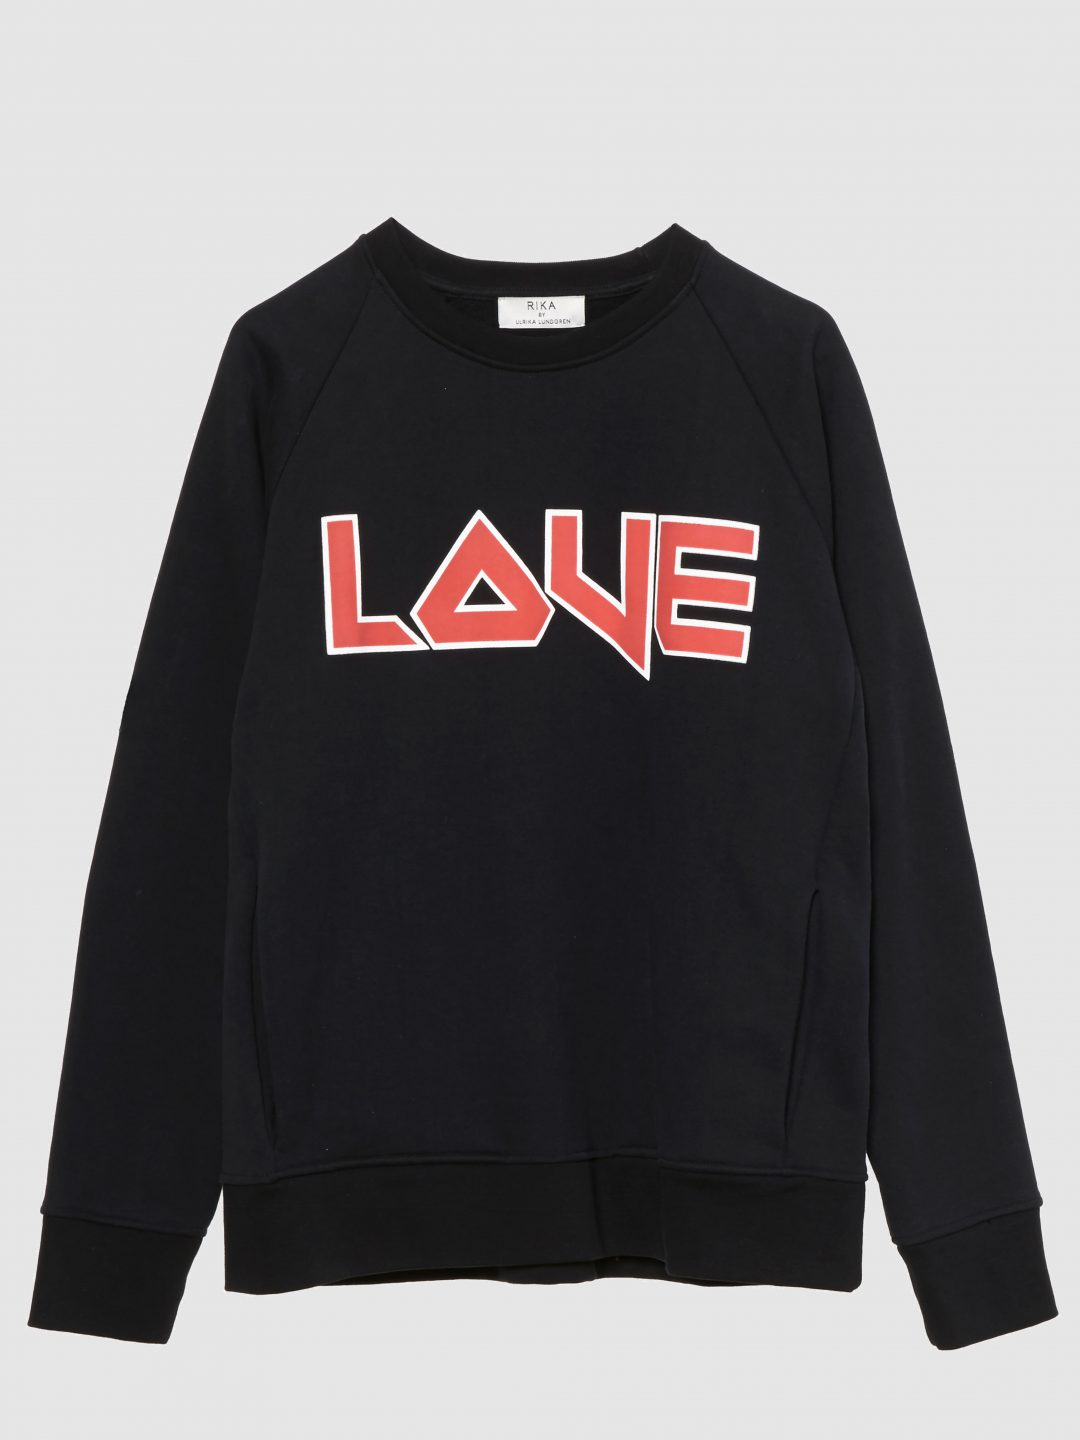 SS17-LOVE-SWEATER-BLACK-RIKA-STUDIOS-OUTLET